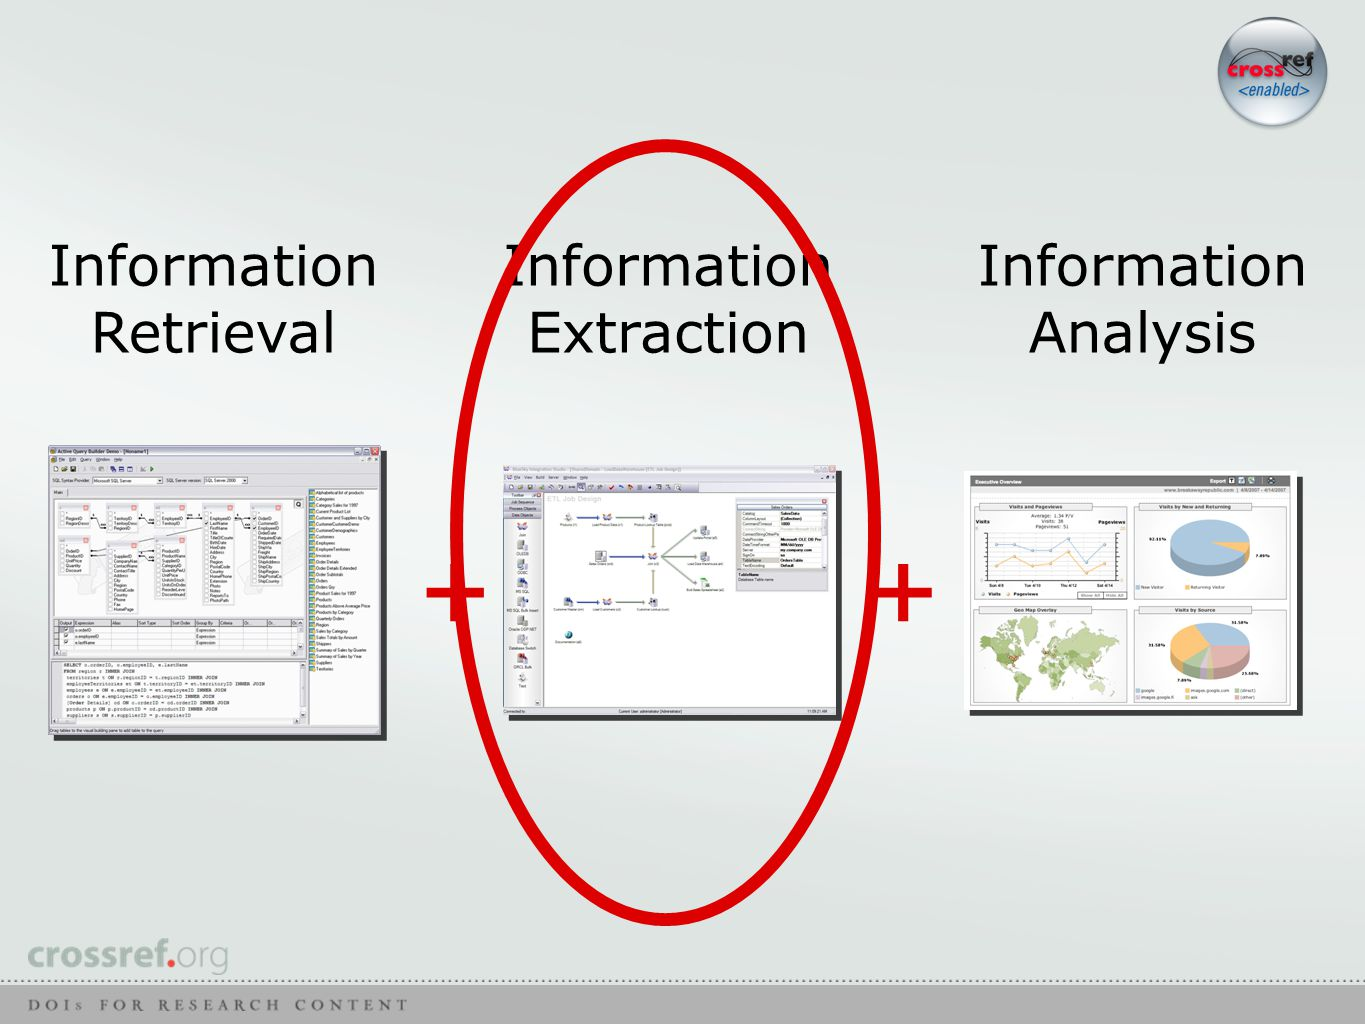 ++ Information Retrieval Information Extraction Information Analysis